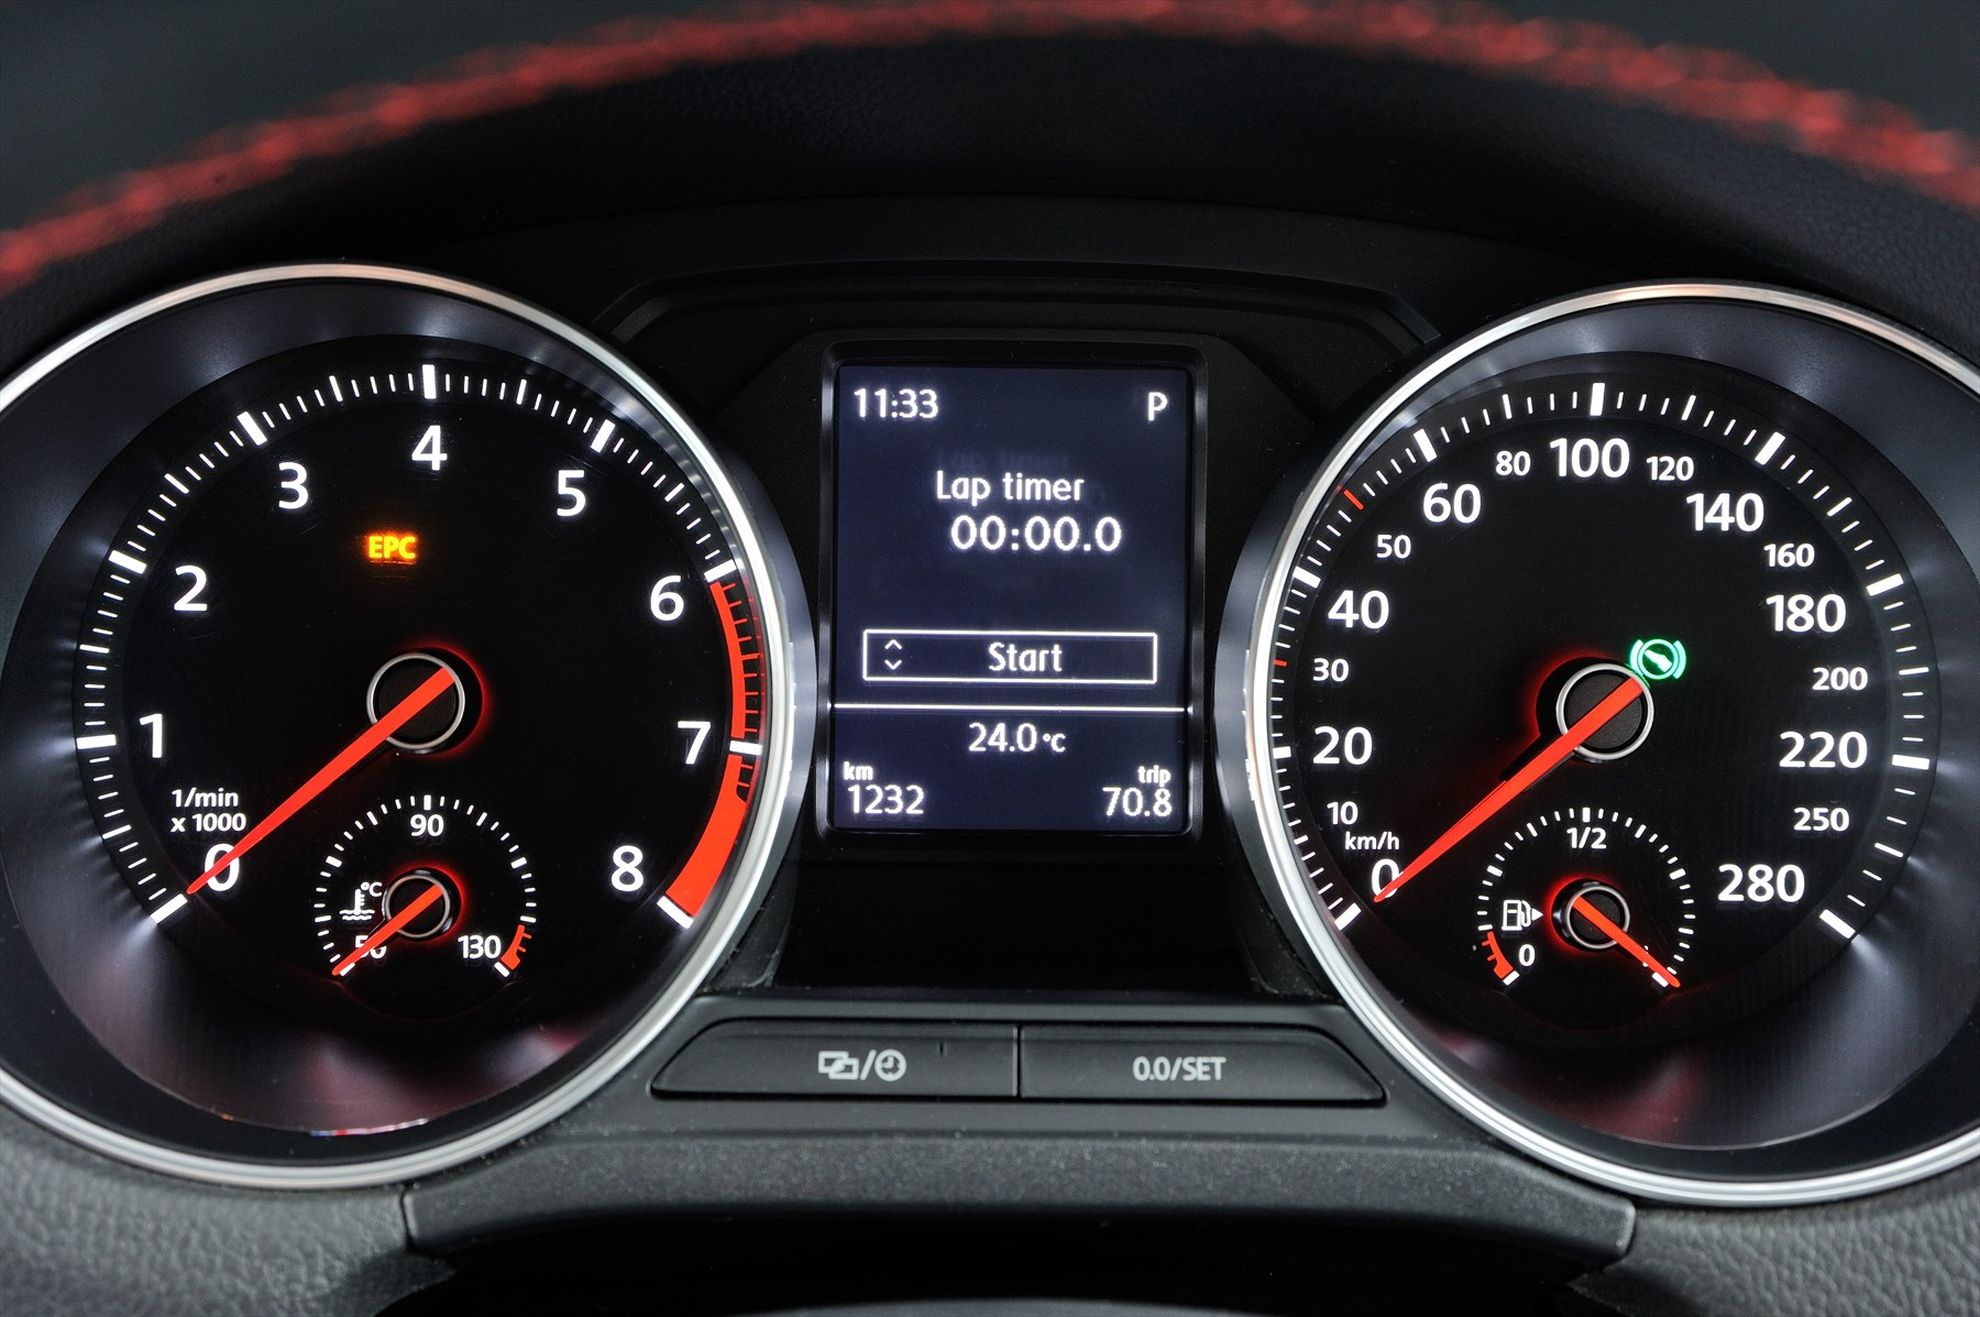 The-New-Volkswagen-Polo-GTI-in-South-Africa-instruments